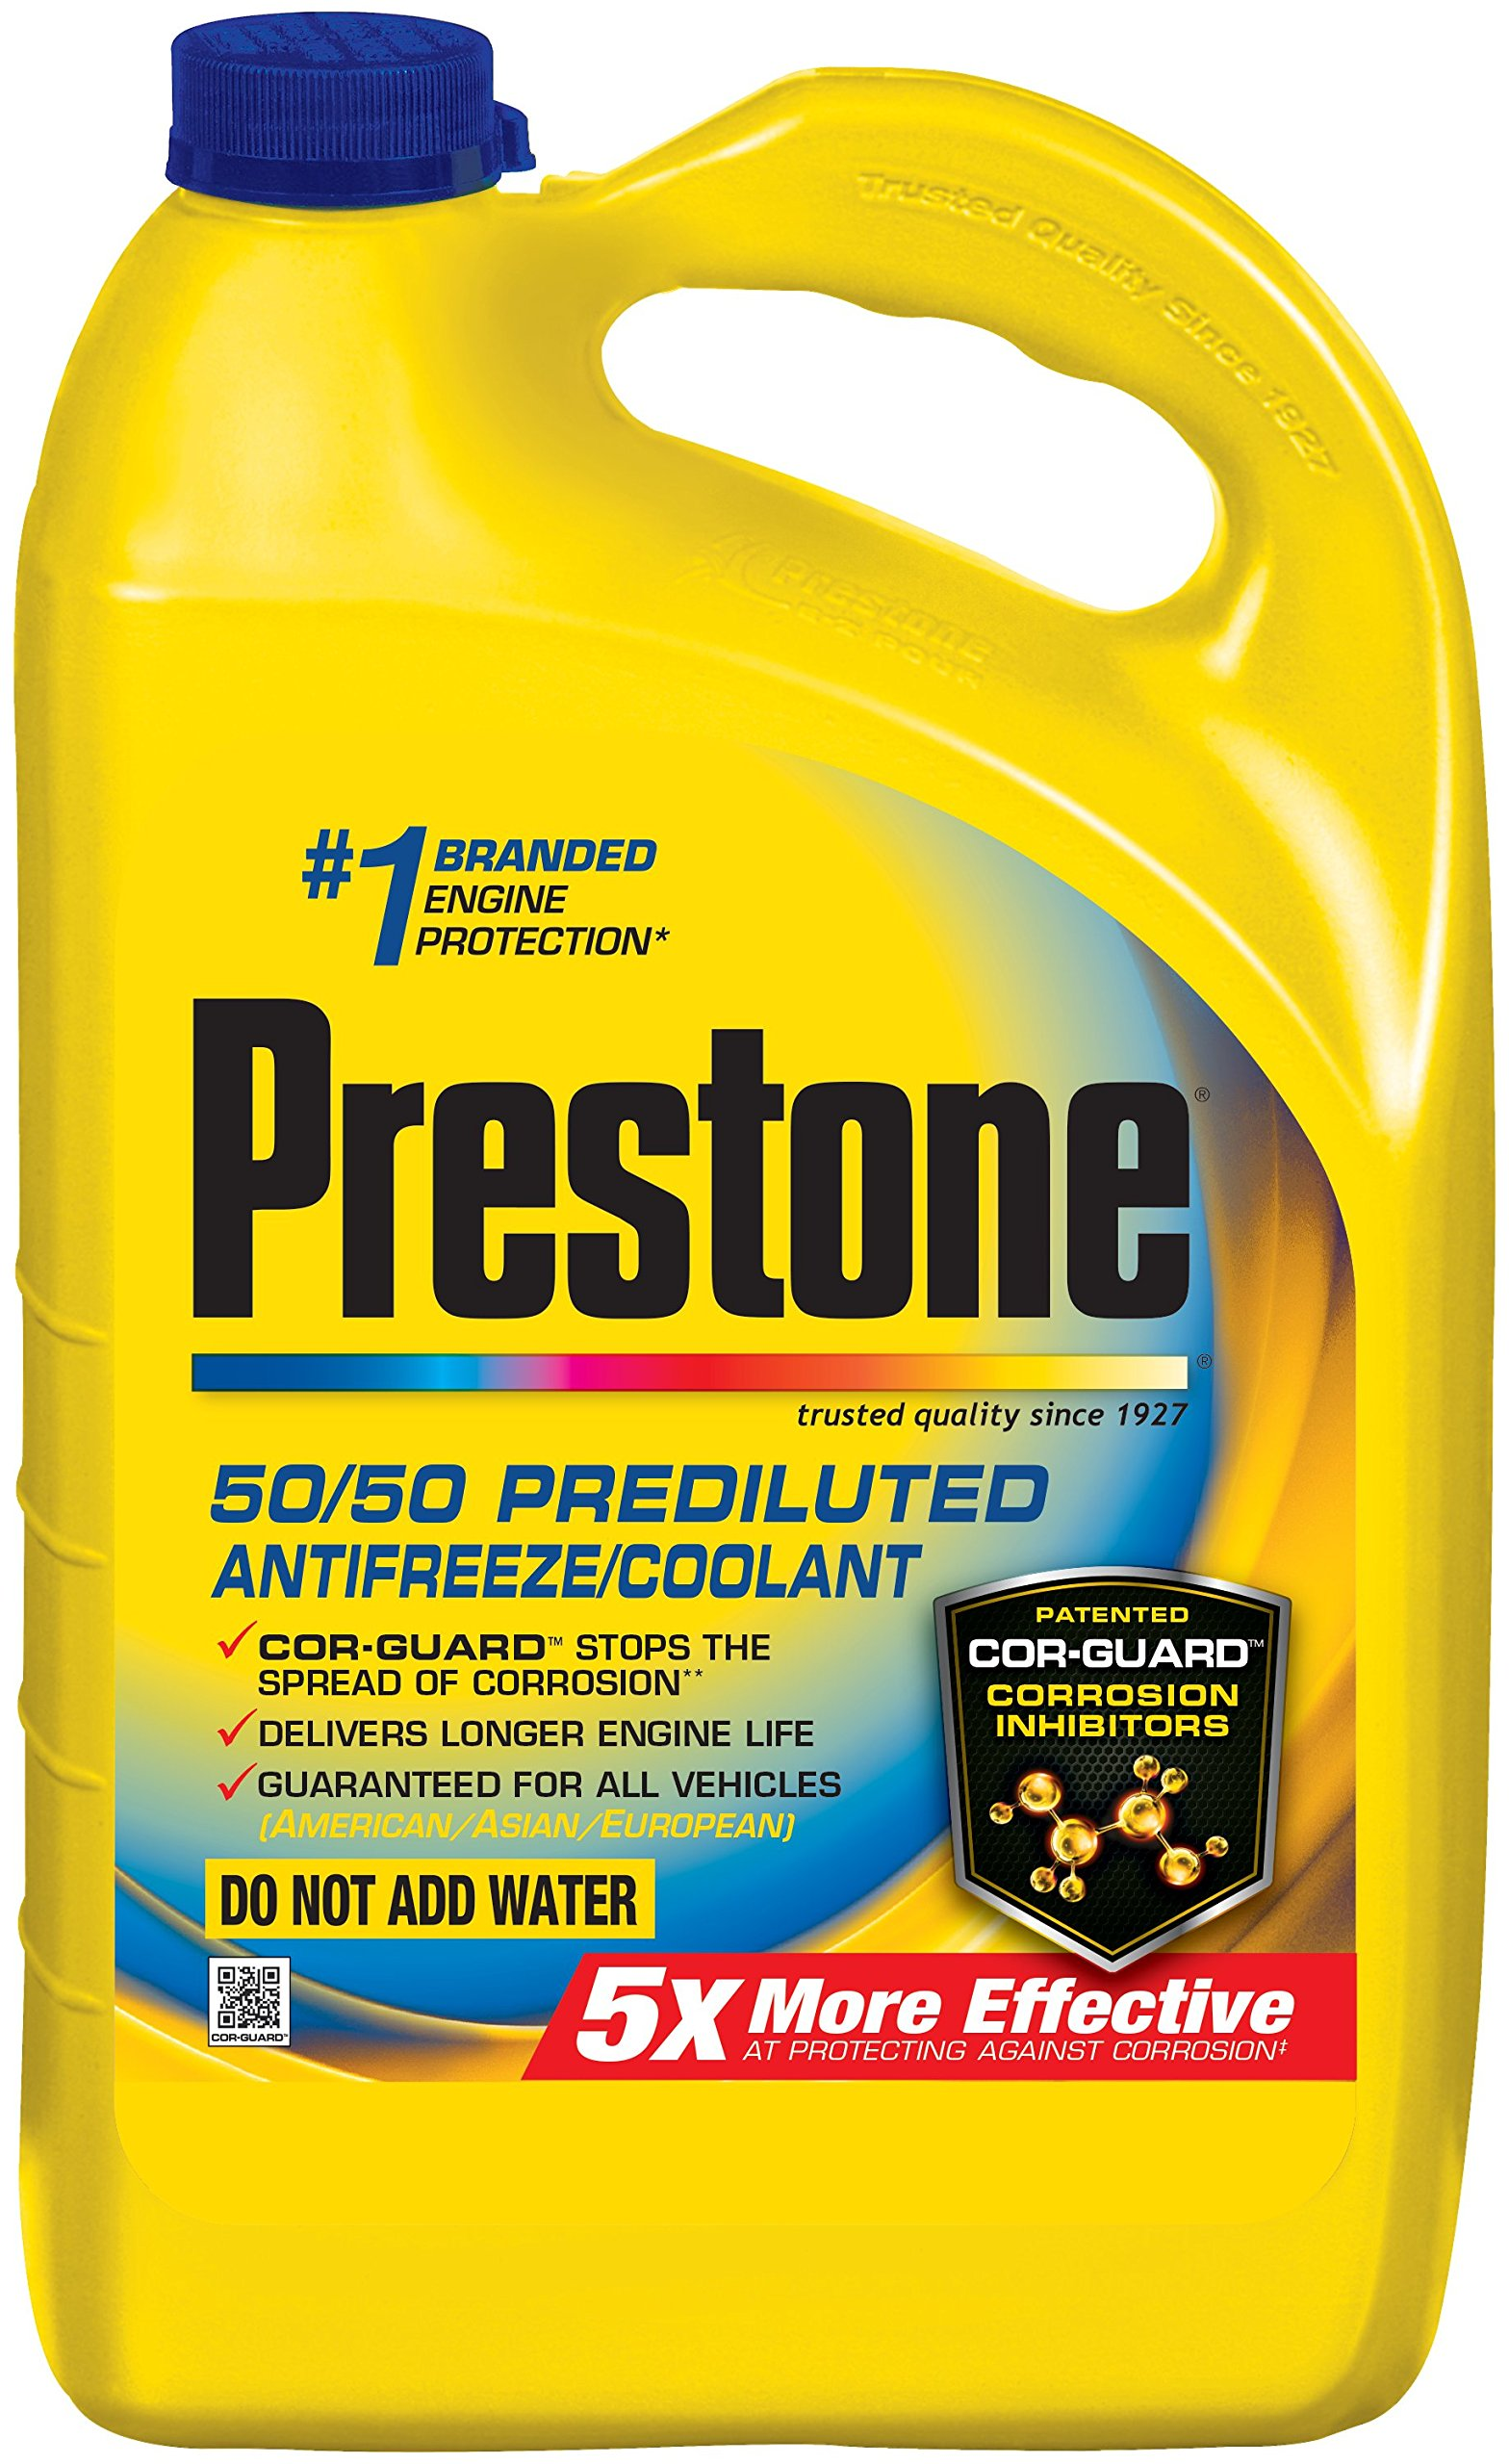 Prestone AF2100-6PK Extended Life 50/50 Antifreeze - 1 Gallon, (Pack of 6) by Prestone